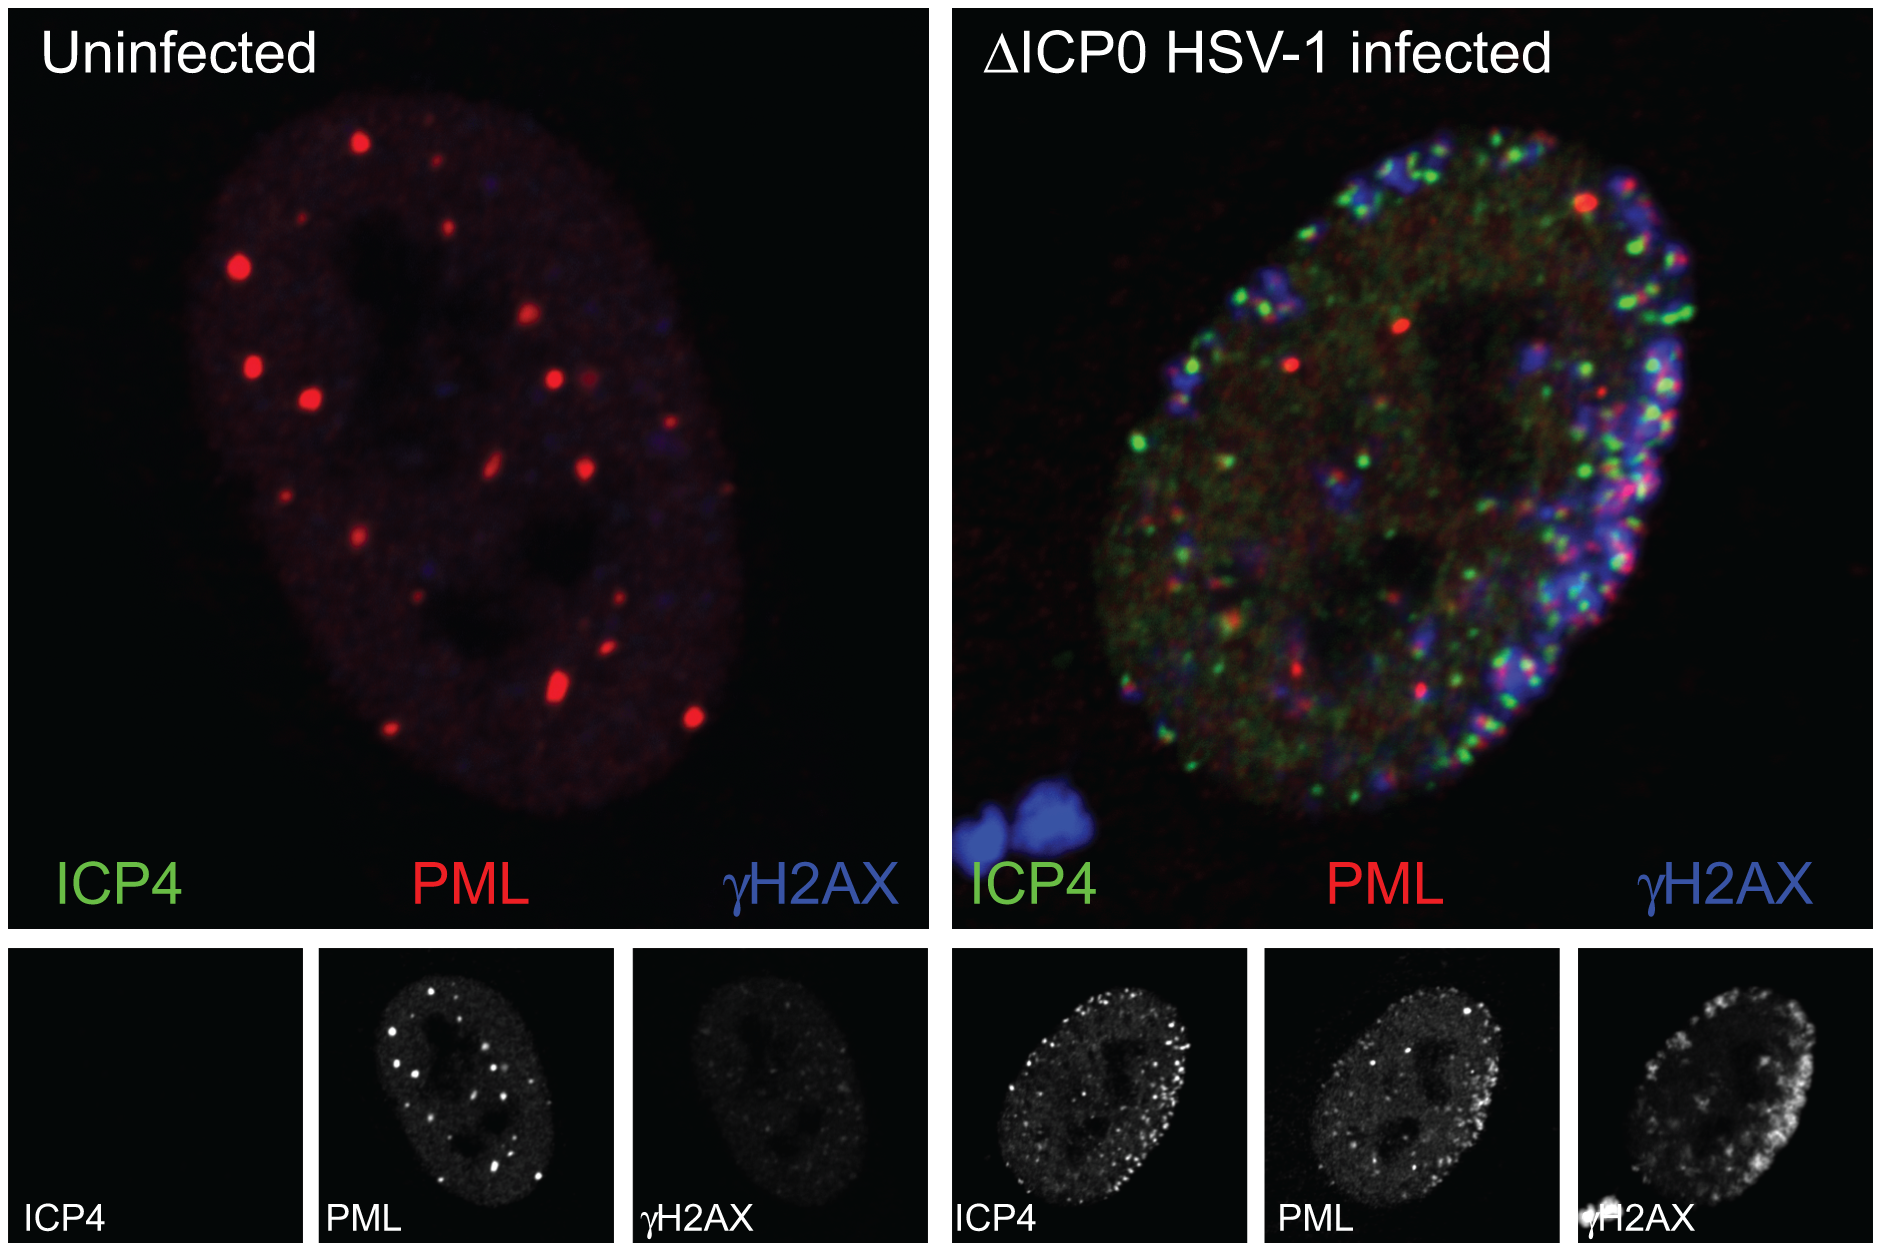 The association of PML and DNA damage response foci with HSV-1 genomes.